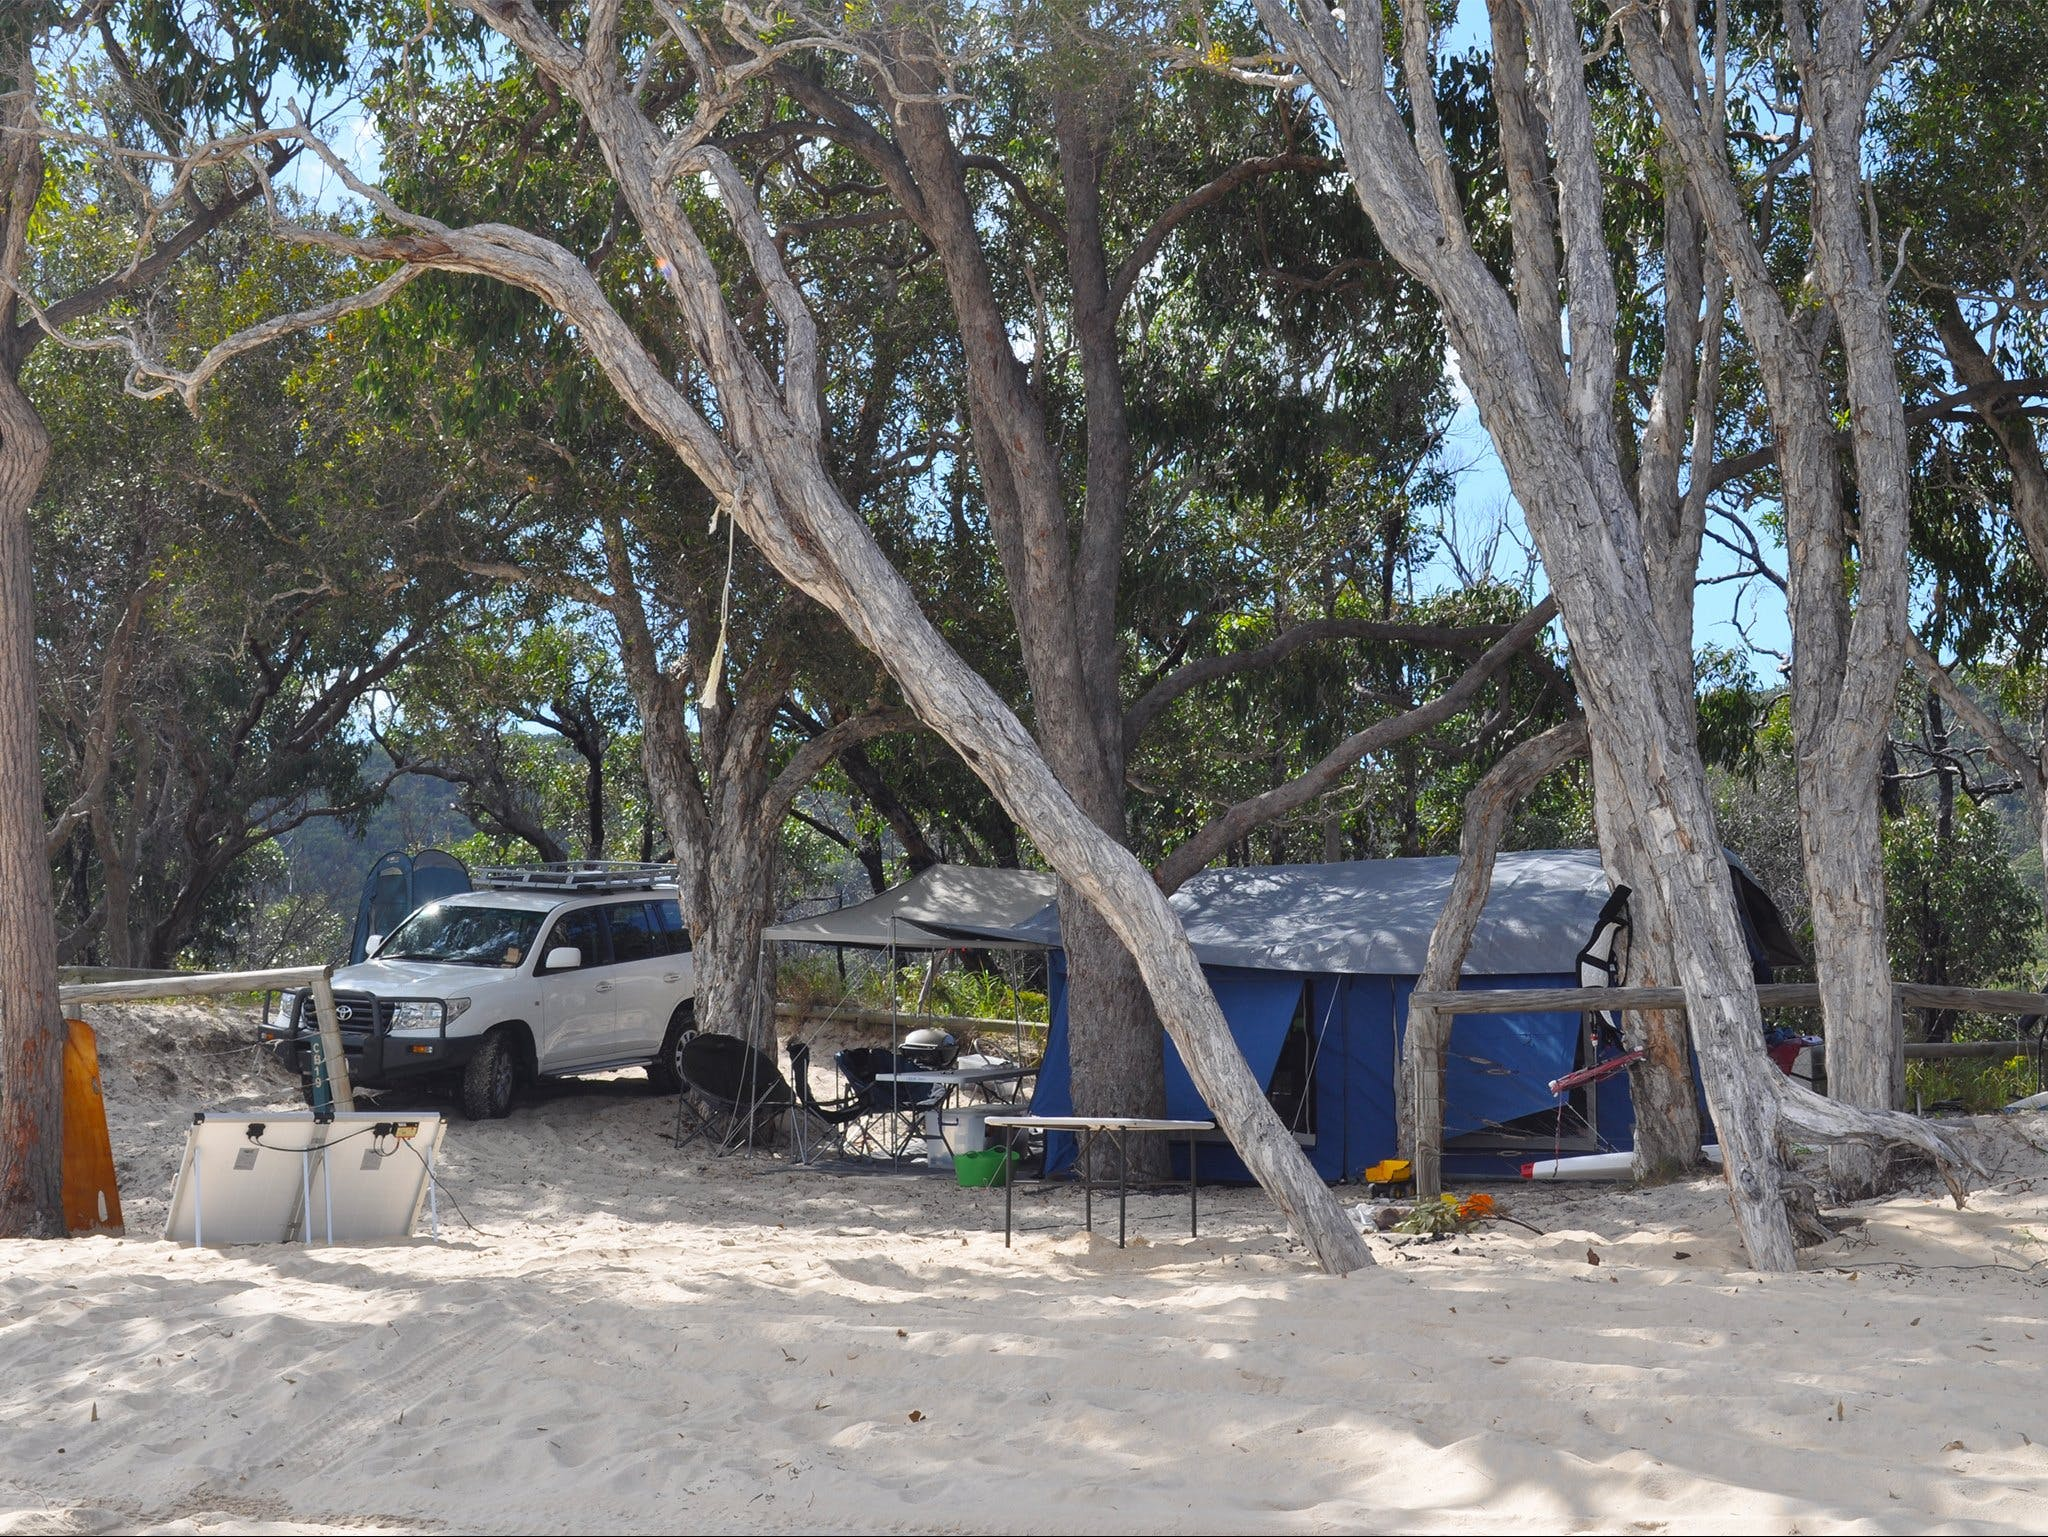 Moreton Island National Park and Recreation Area camping - South Australia Travel